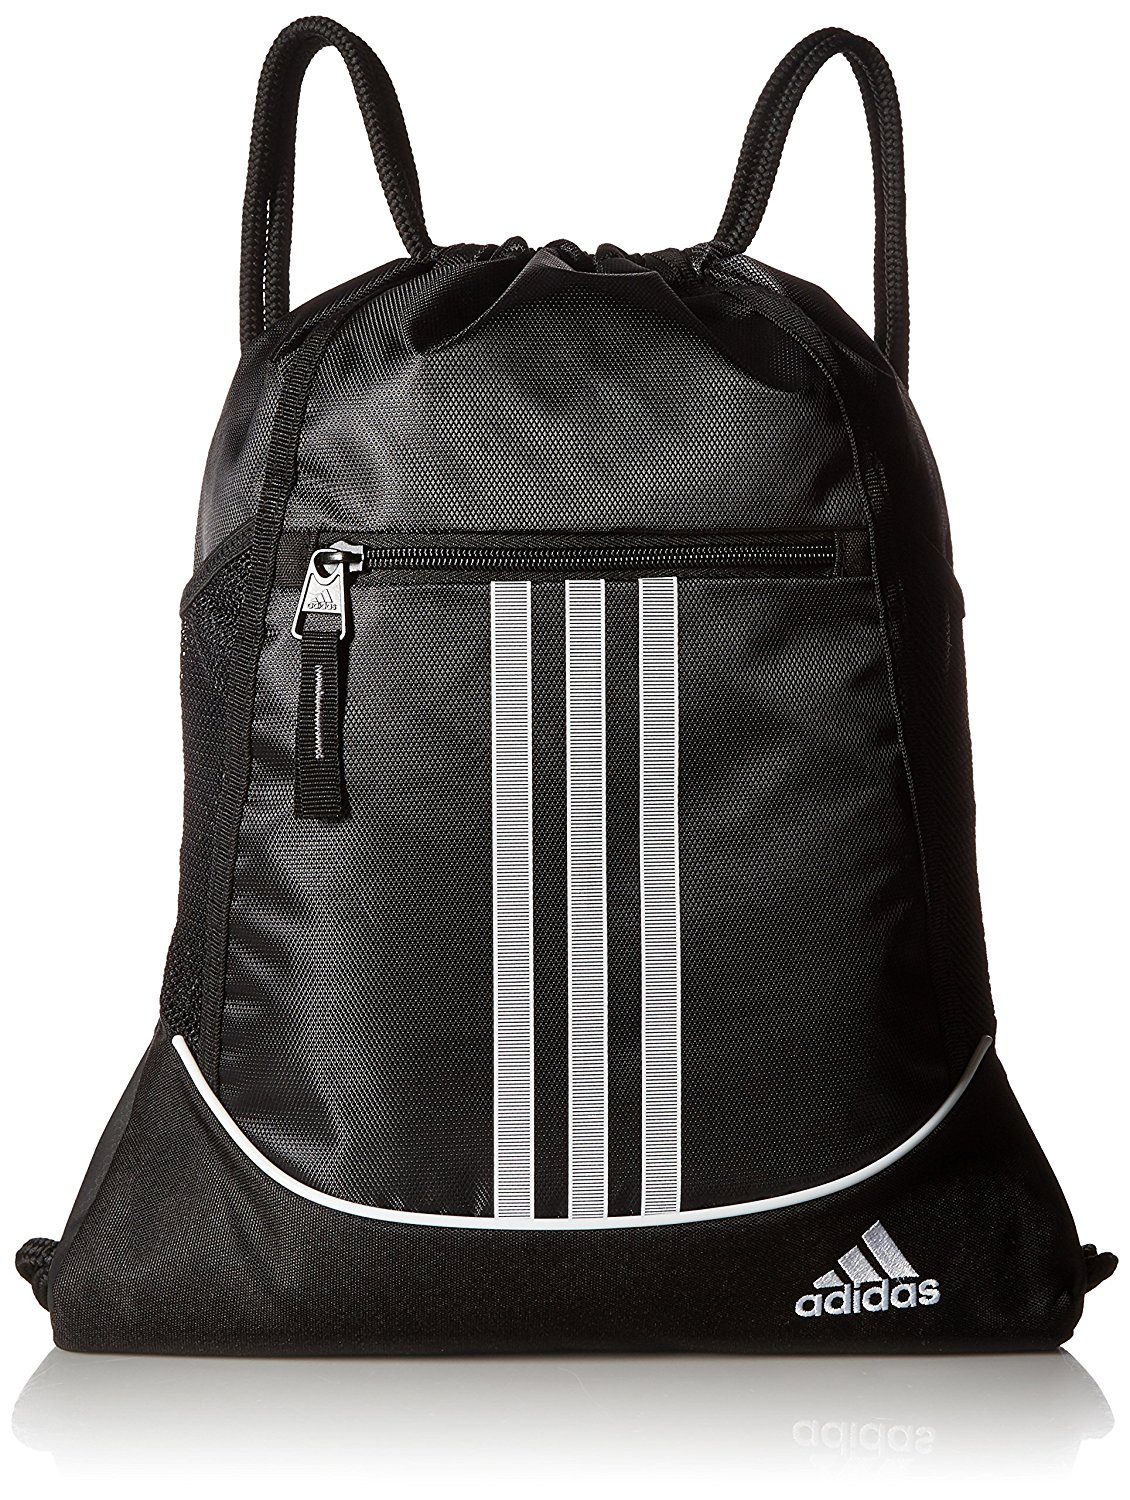 Black Backpack Adidas